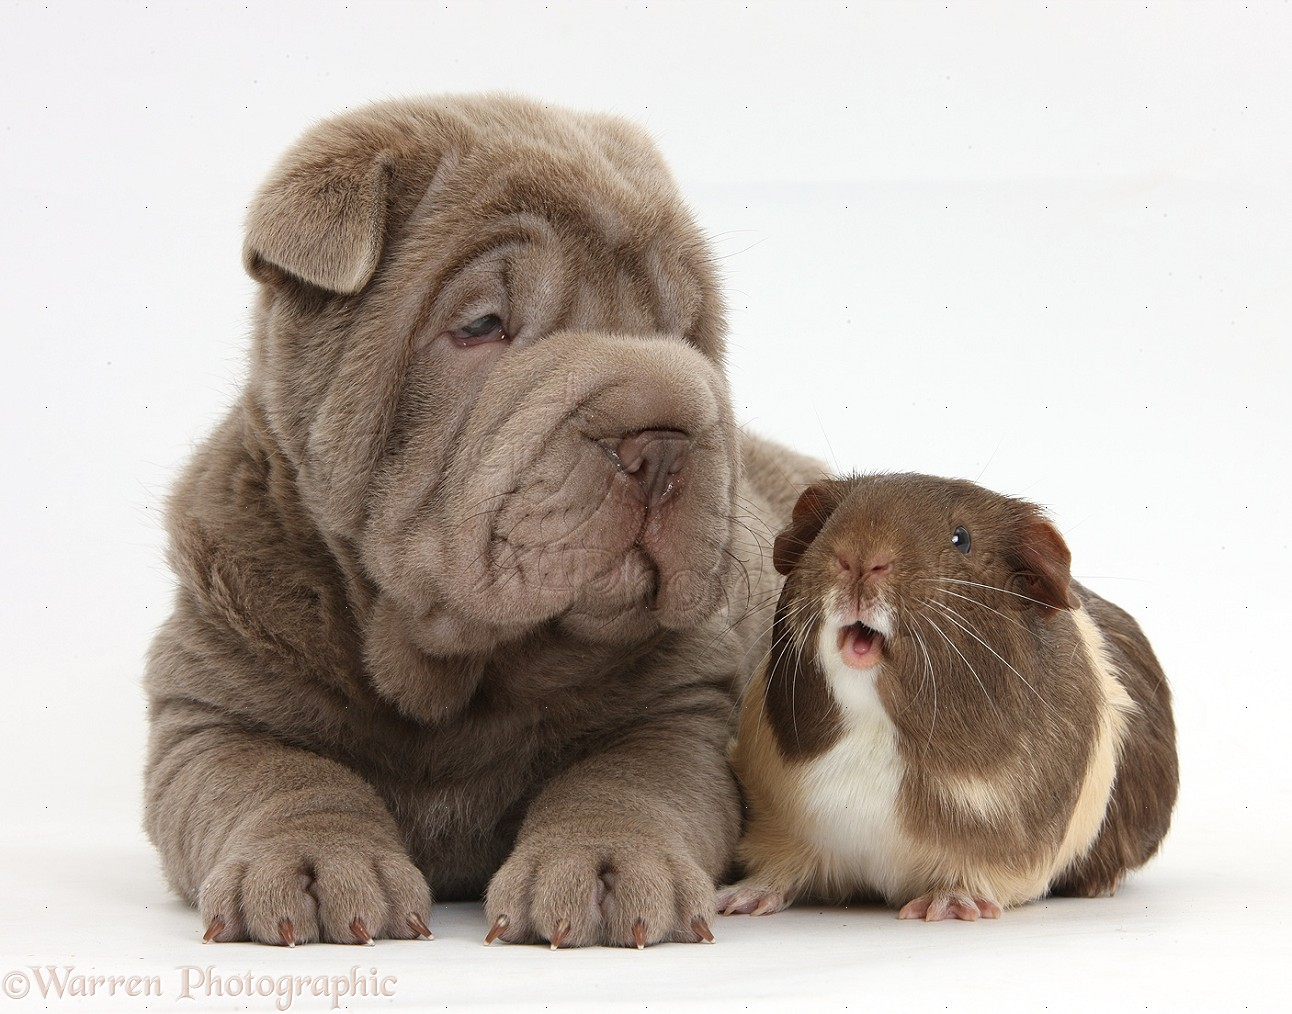 Pets Shar Pei Pup And Guinea Pig Photo Wp36014